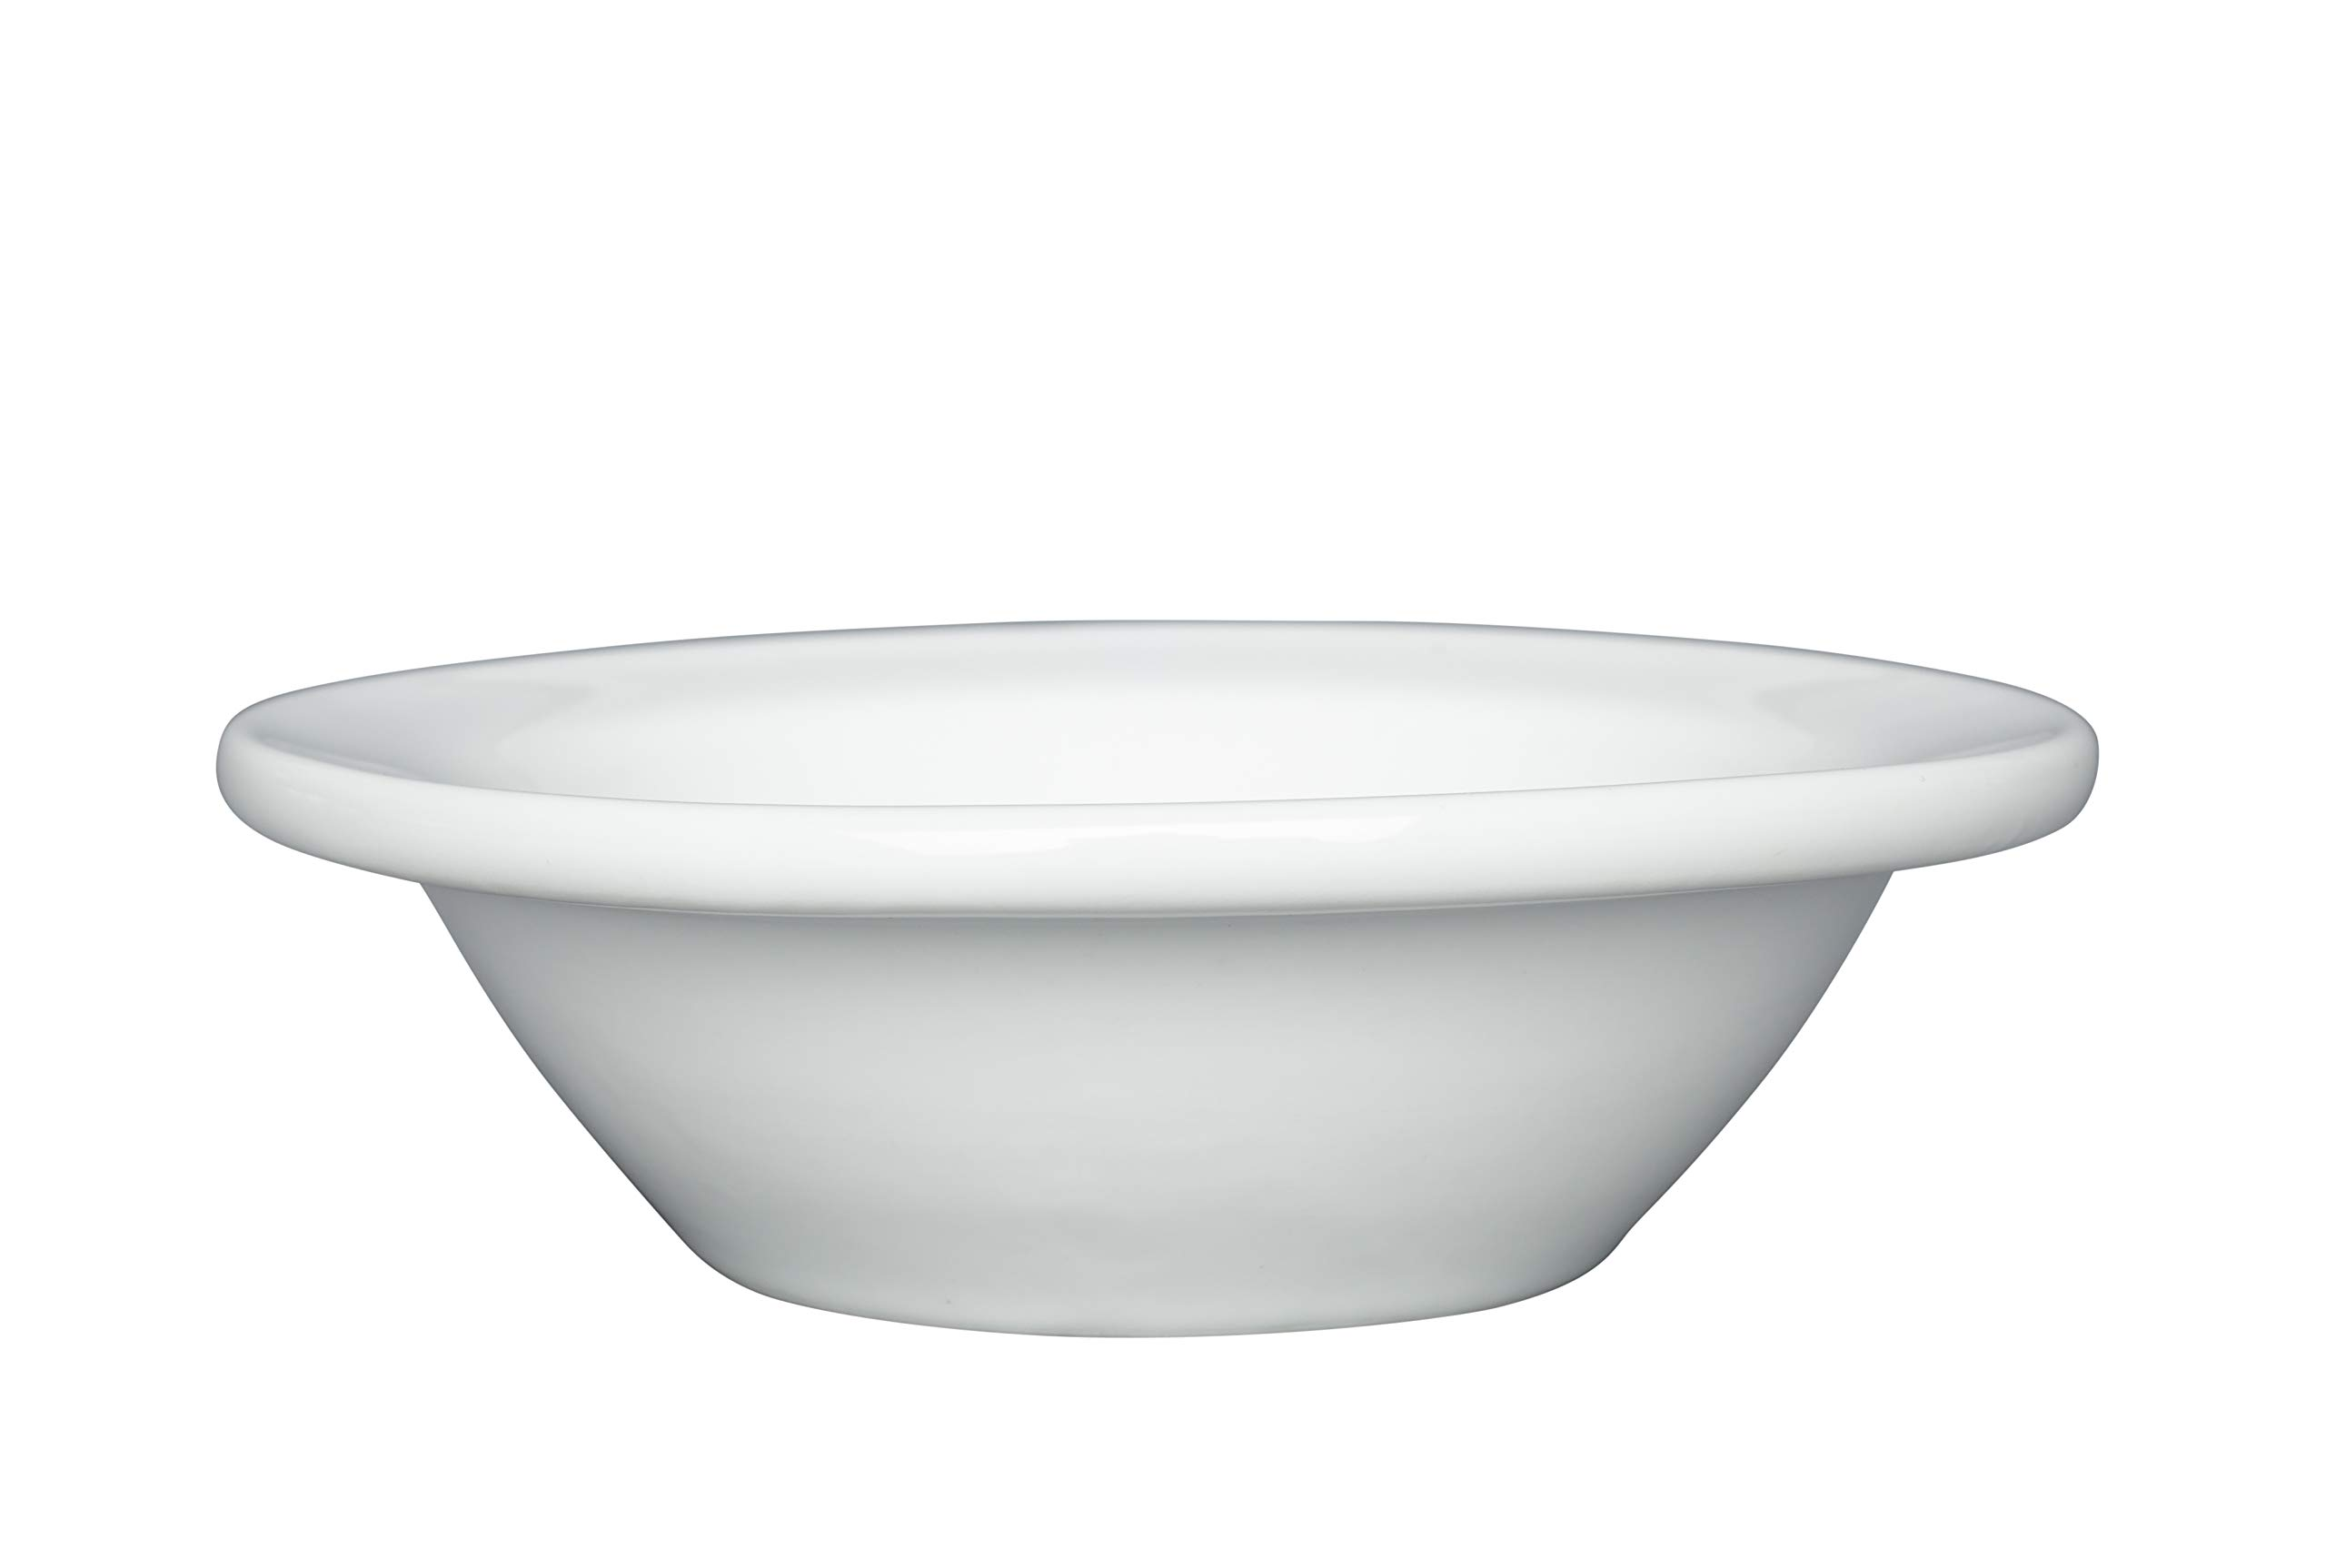 Chef Expressions 4-5/8'' Round Fruit Bowl, 3-ounce Capacity, Restaurant Quality, Vitrified Bright White Porcelain, Rolled Edge (Case of 12)